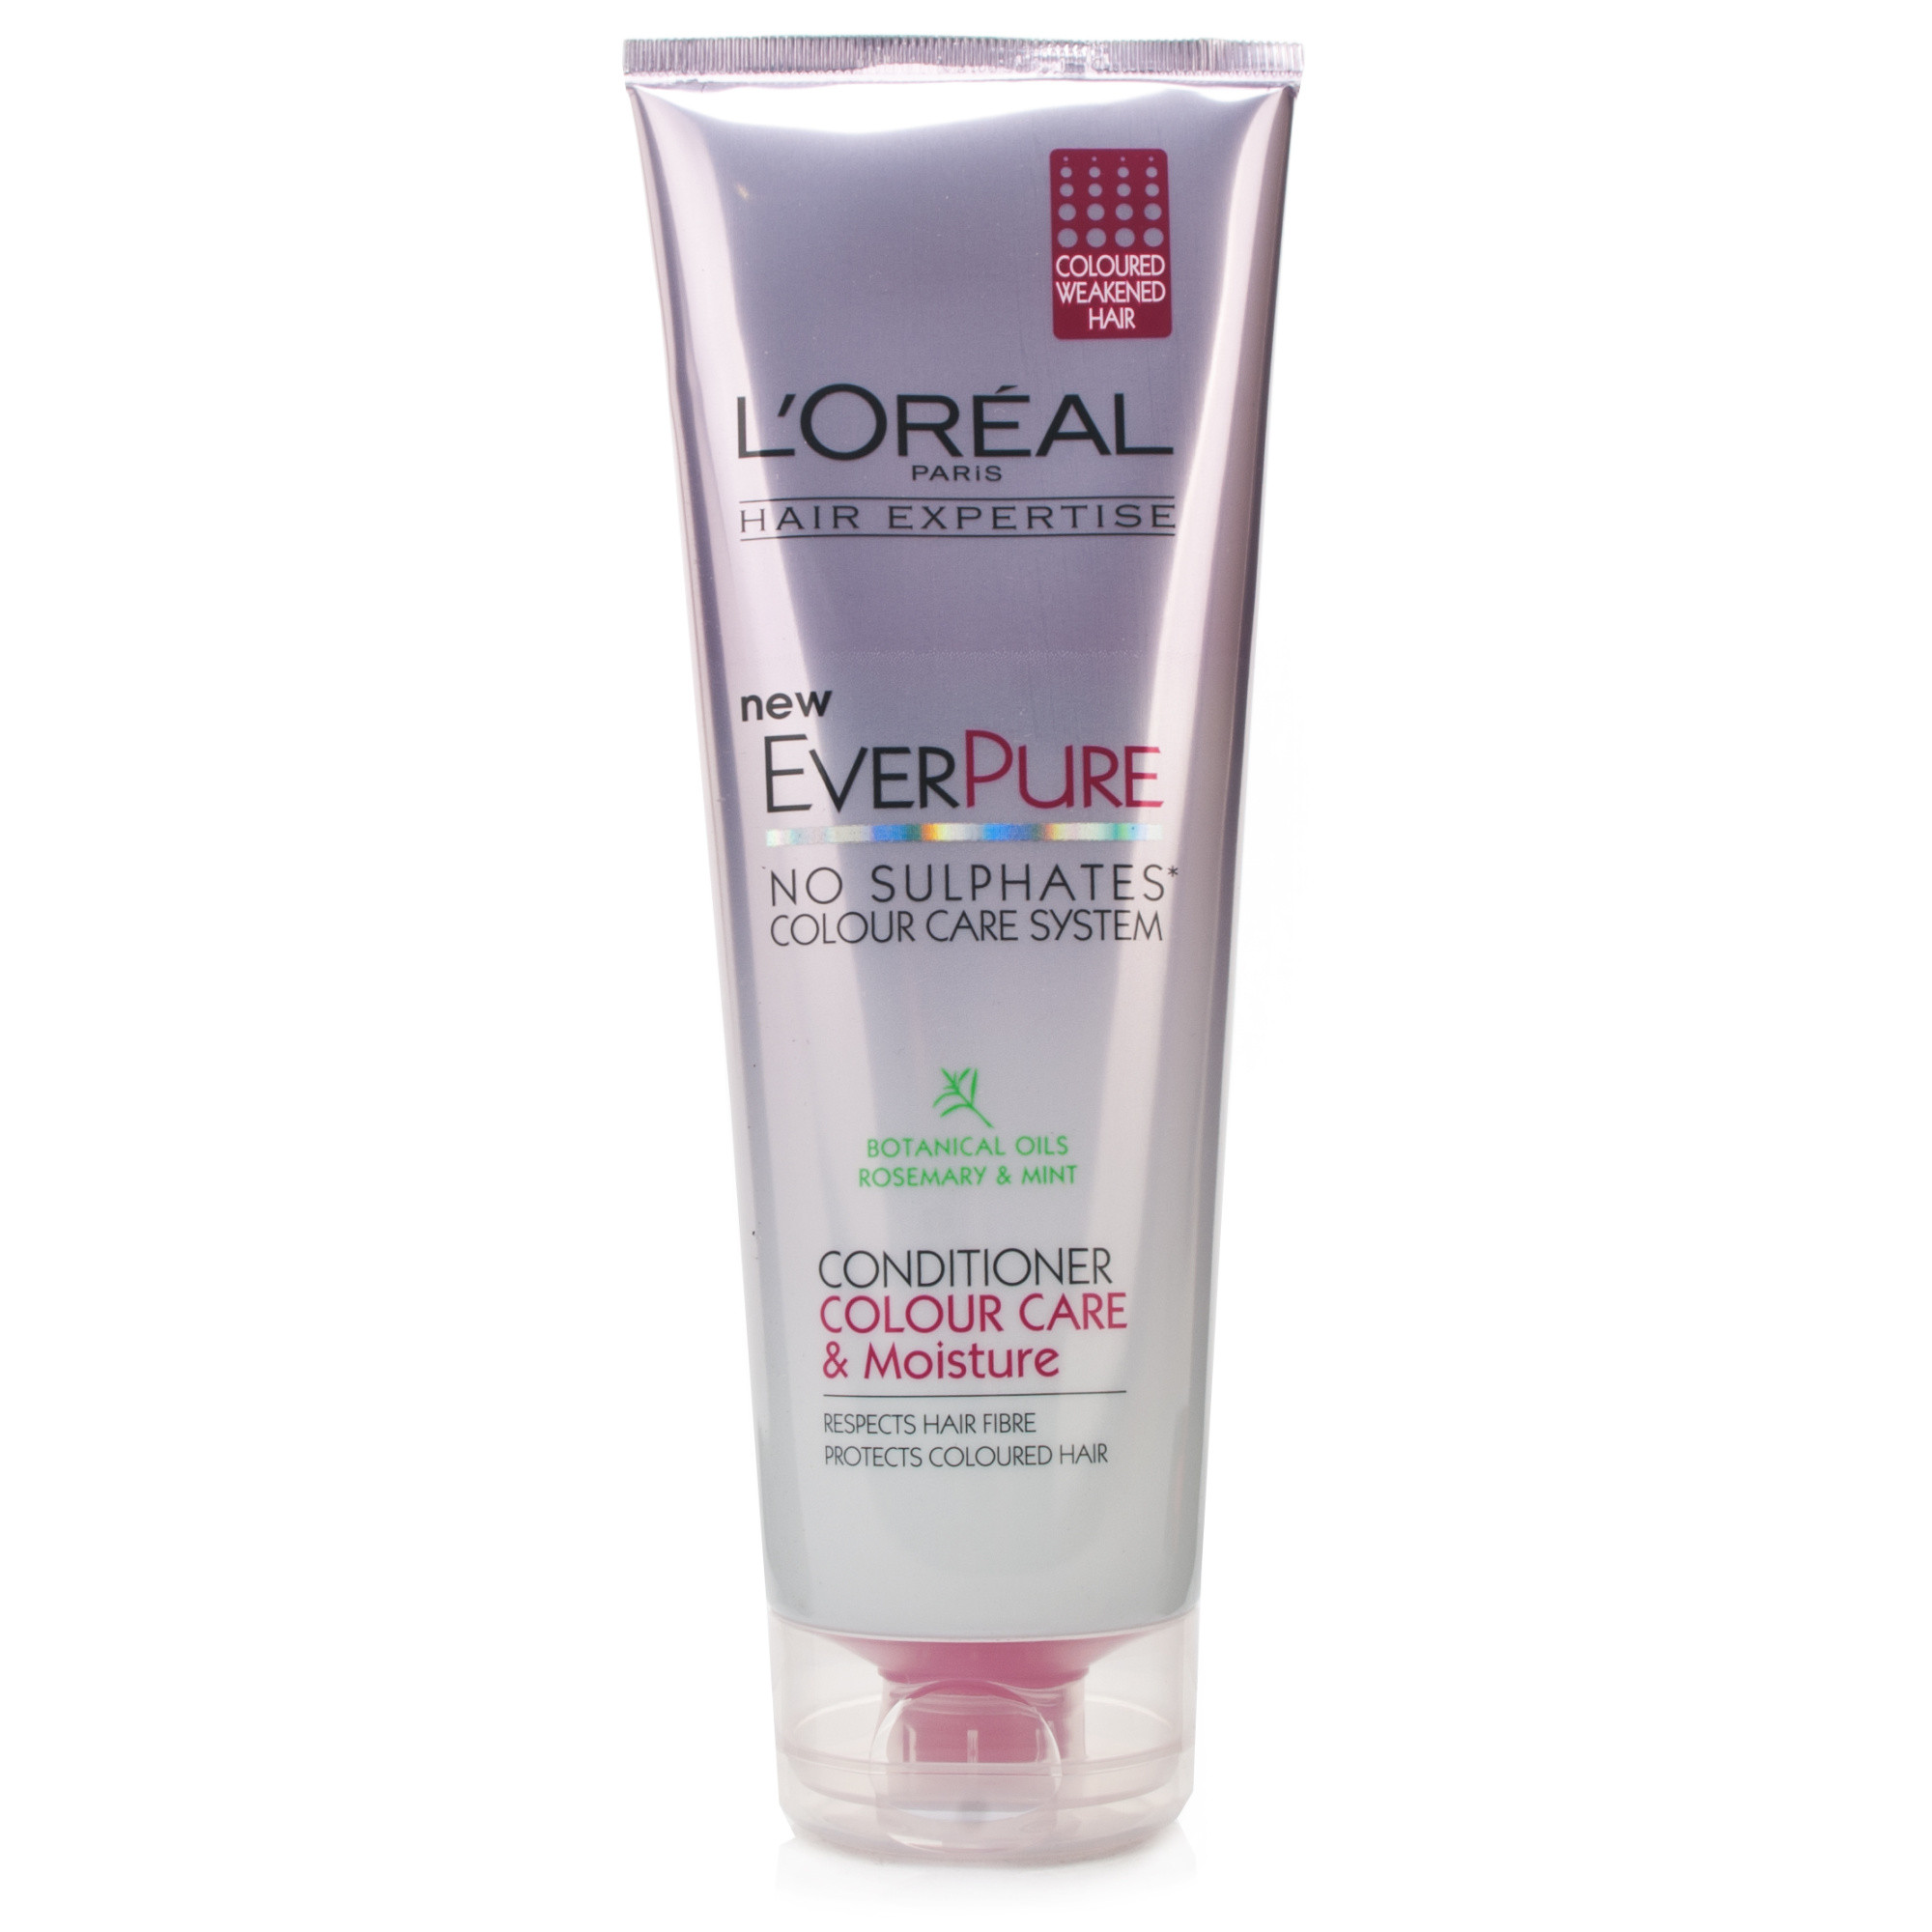 L'Oreal Hair Expertise EverPure Colour Care & Moisture Conditioner